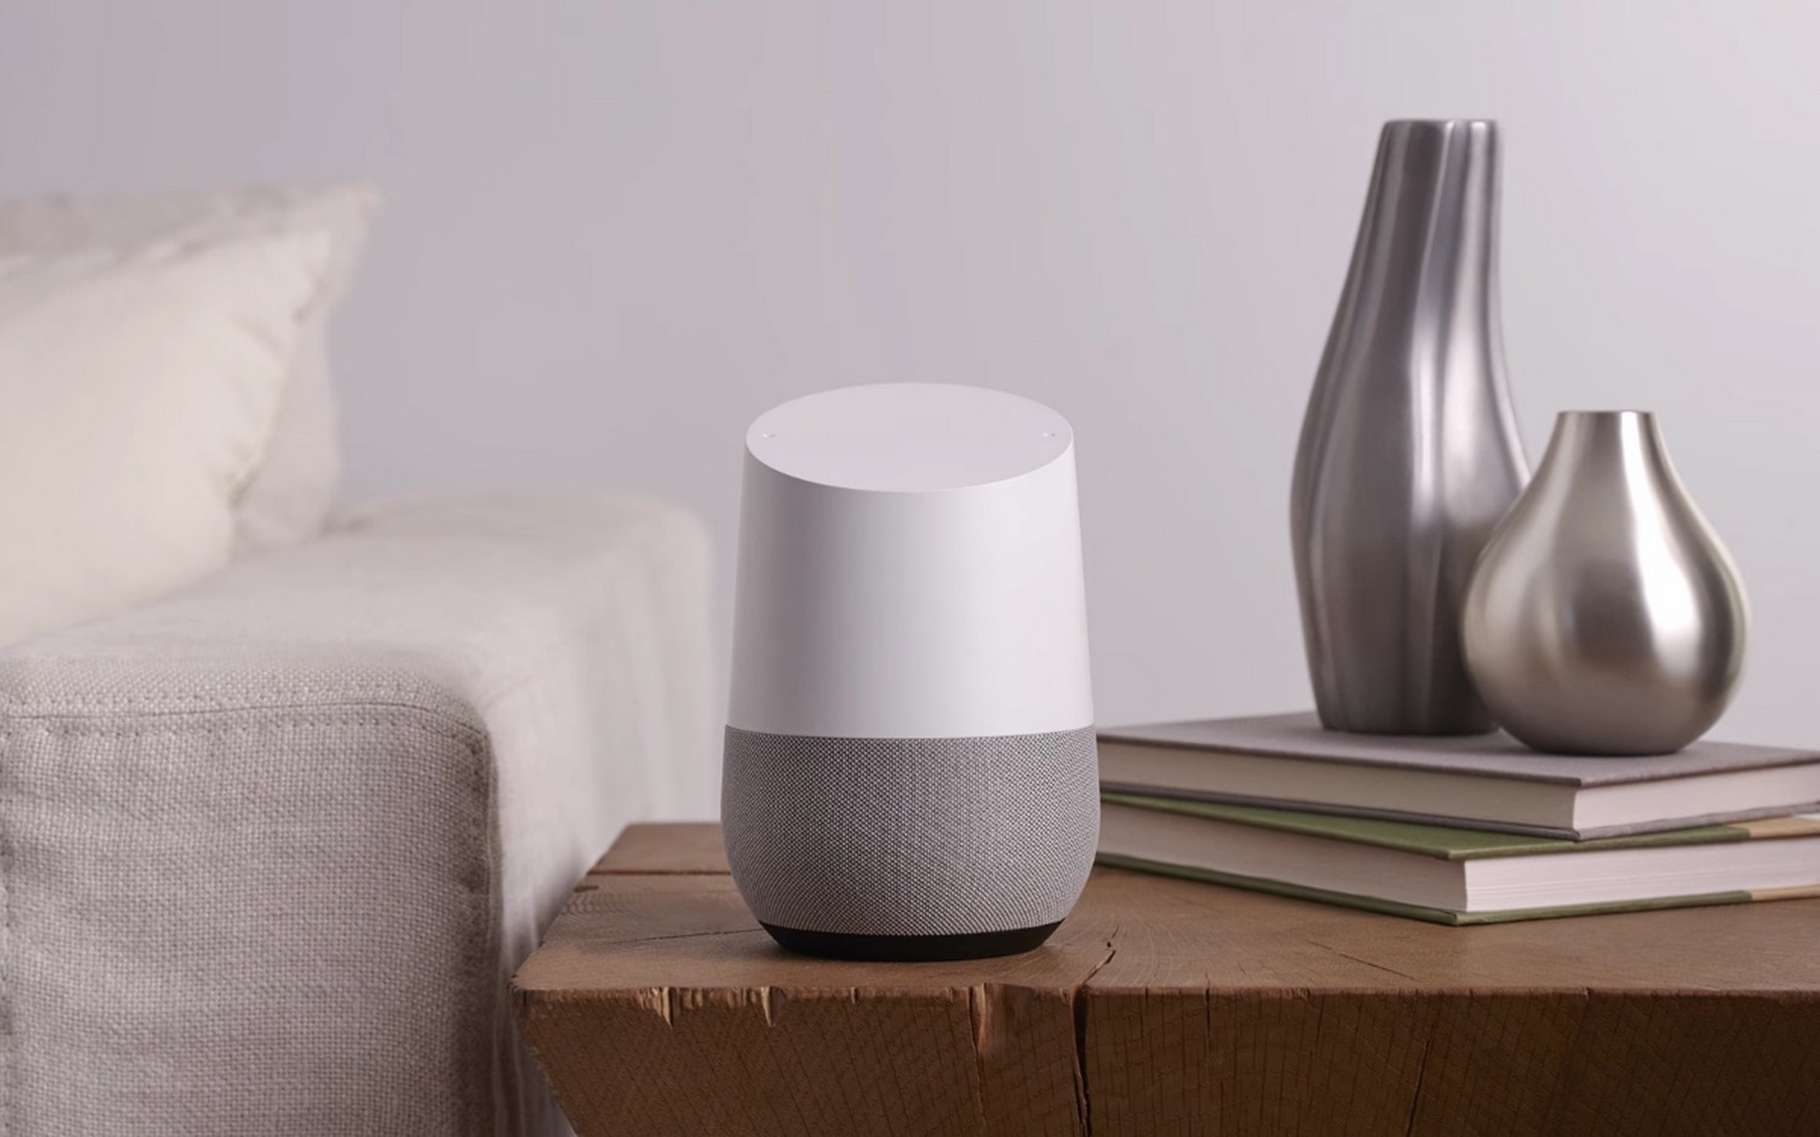 Google Home, l'enceinte connectée de Google. © Google